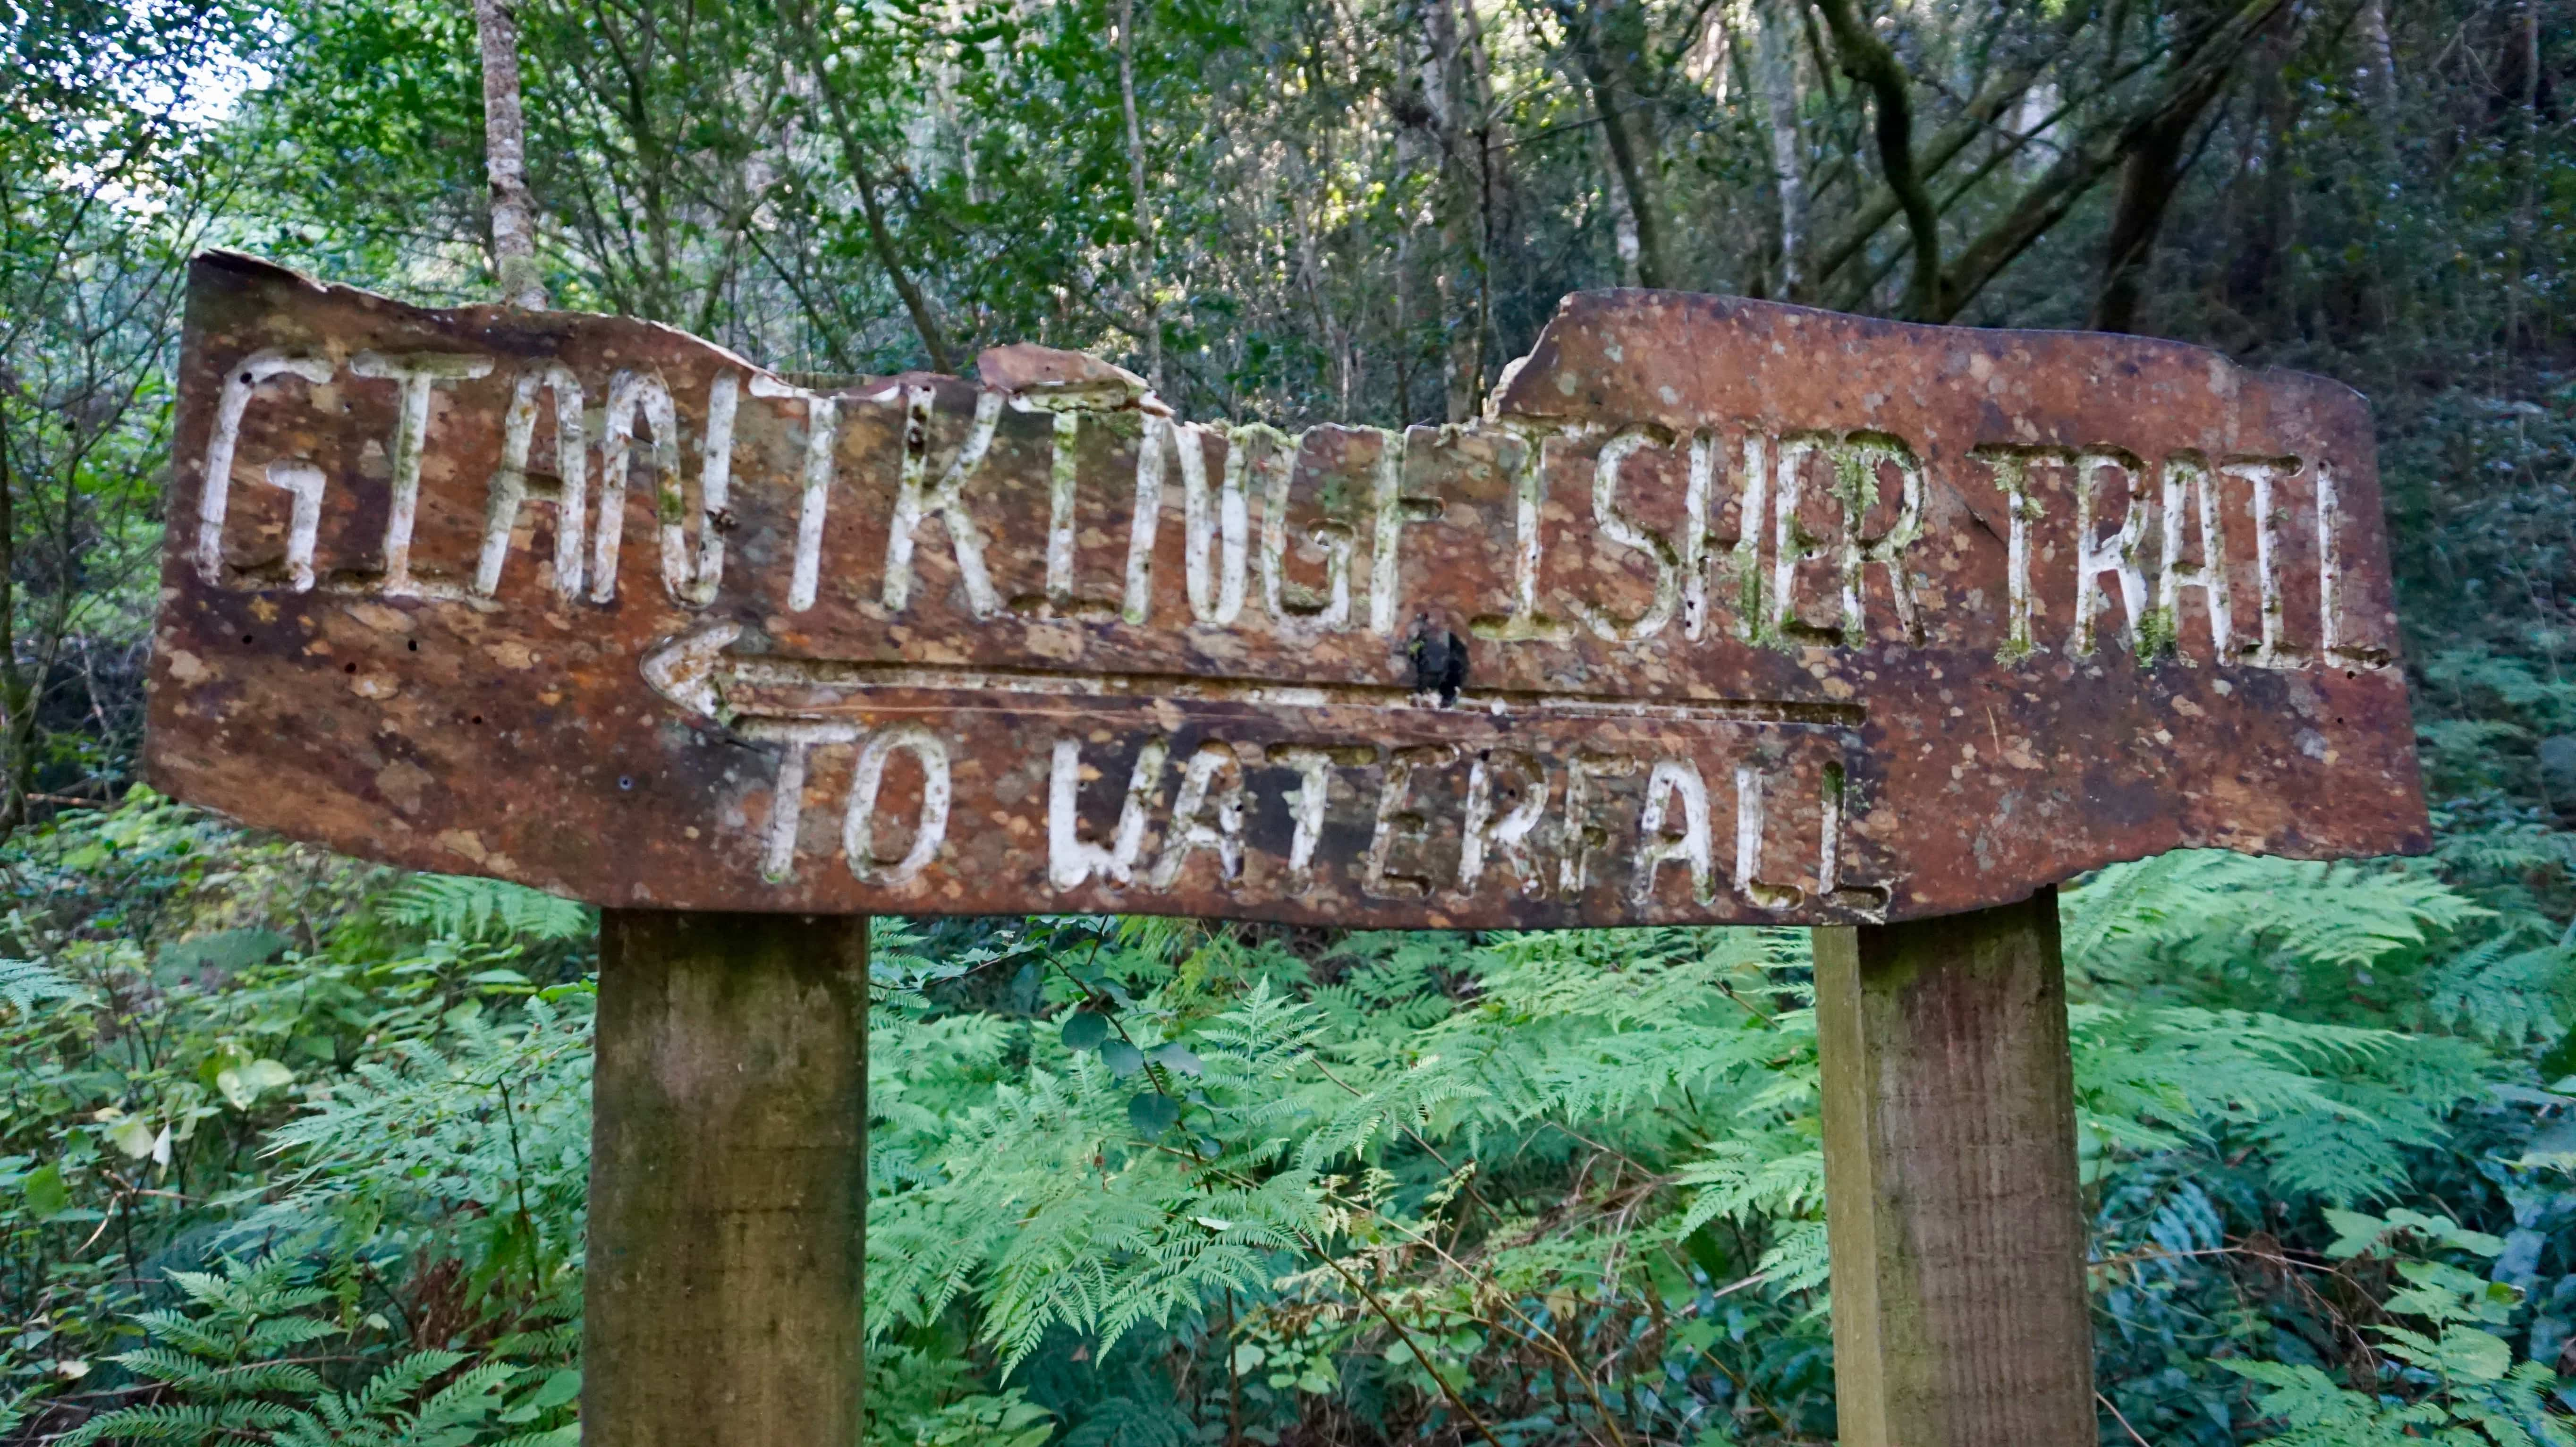 Giant Kingfisher Trail sign at Wilderness National Park, South Africa